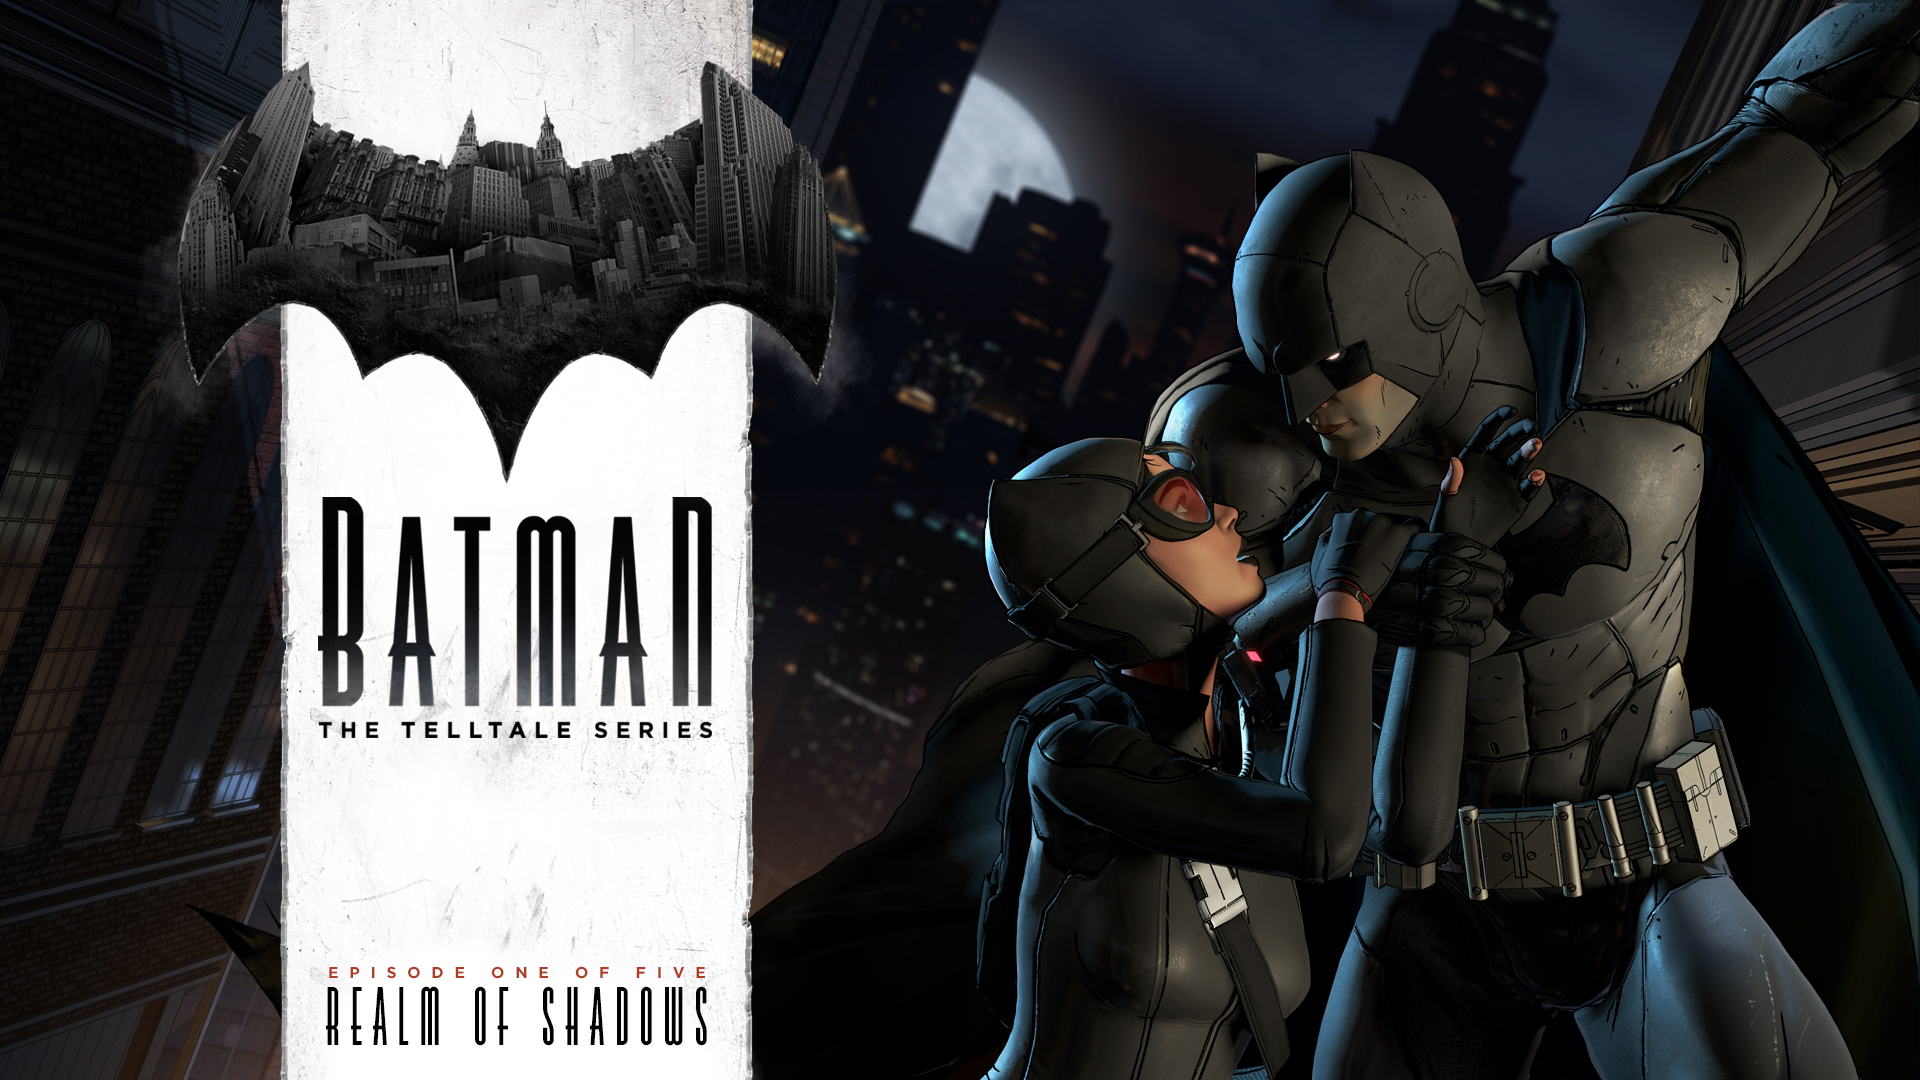 batman-the-telltale-series-episode-1-artwork-001